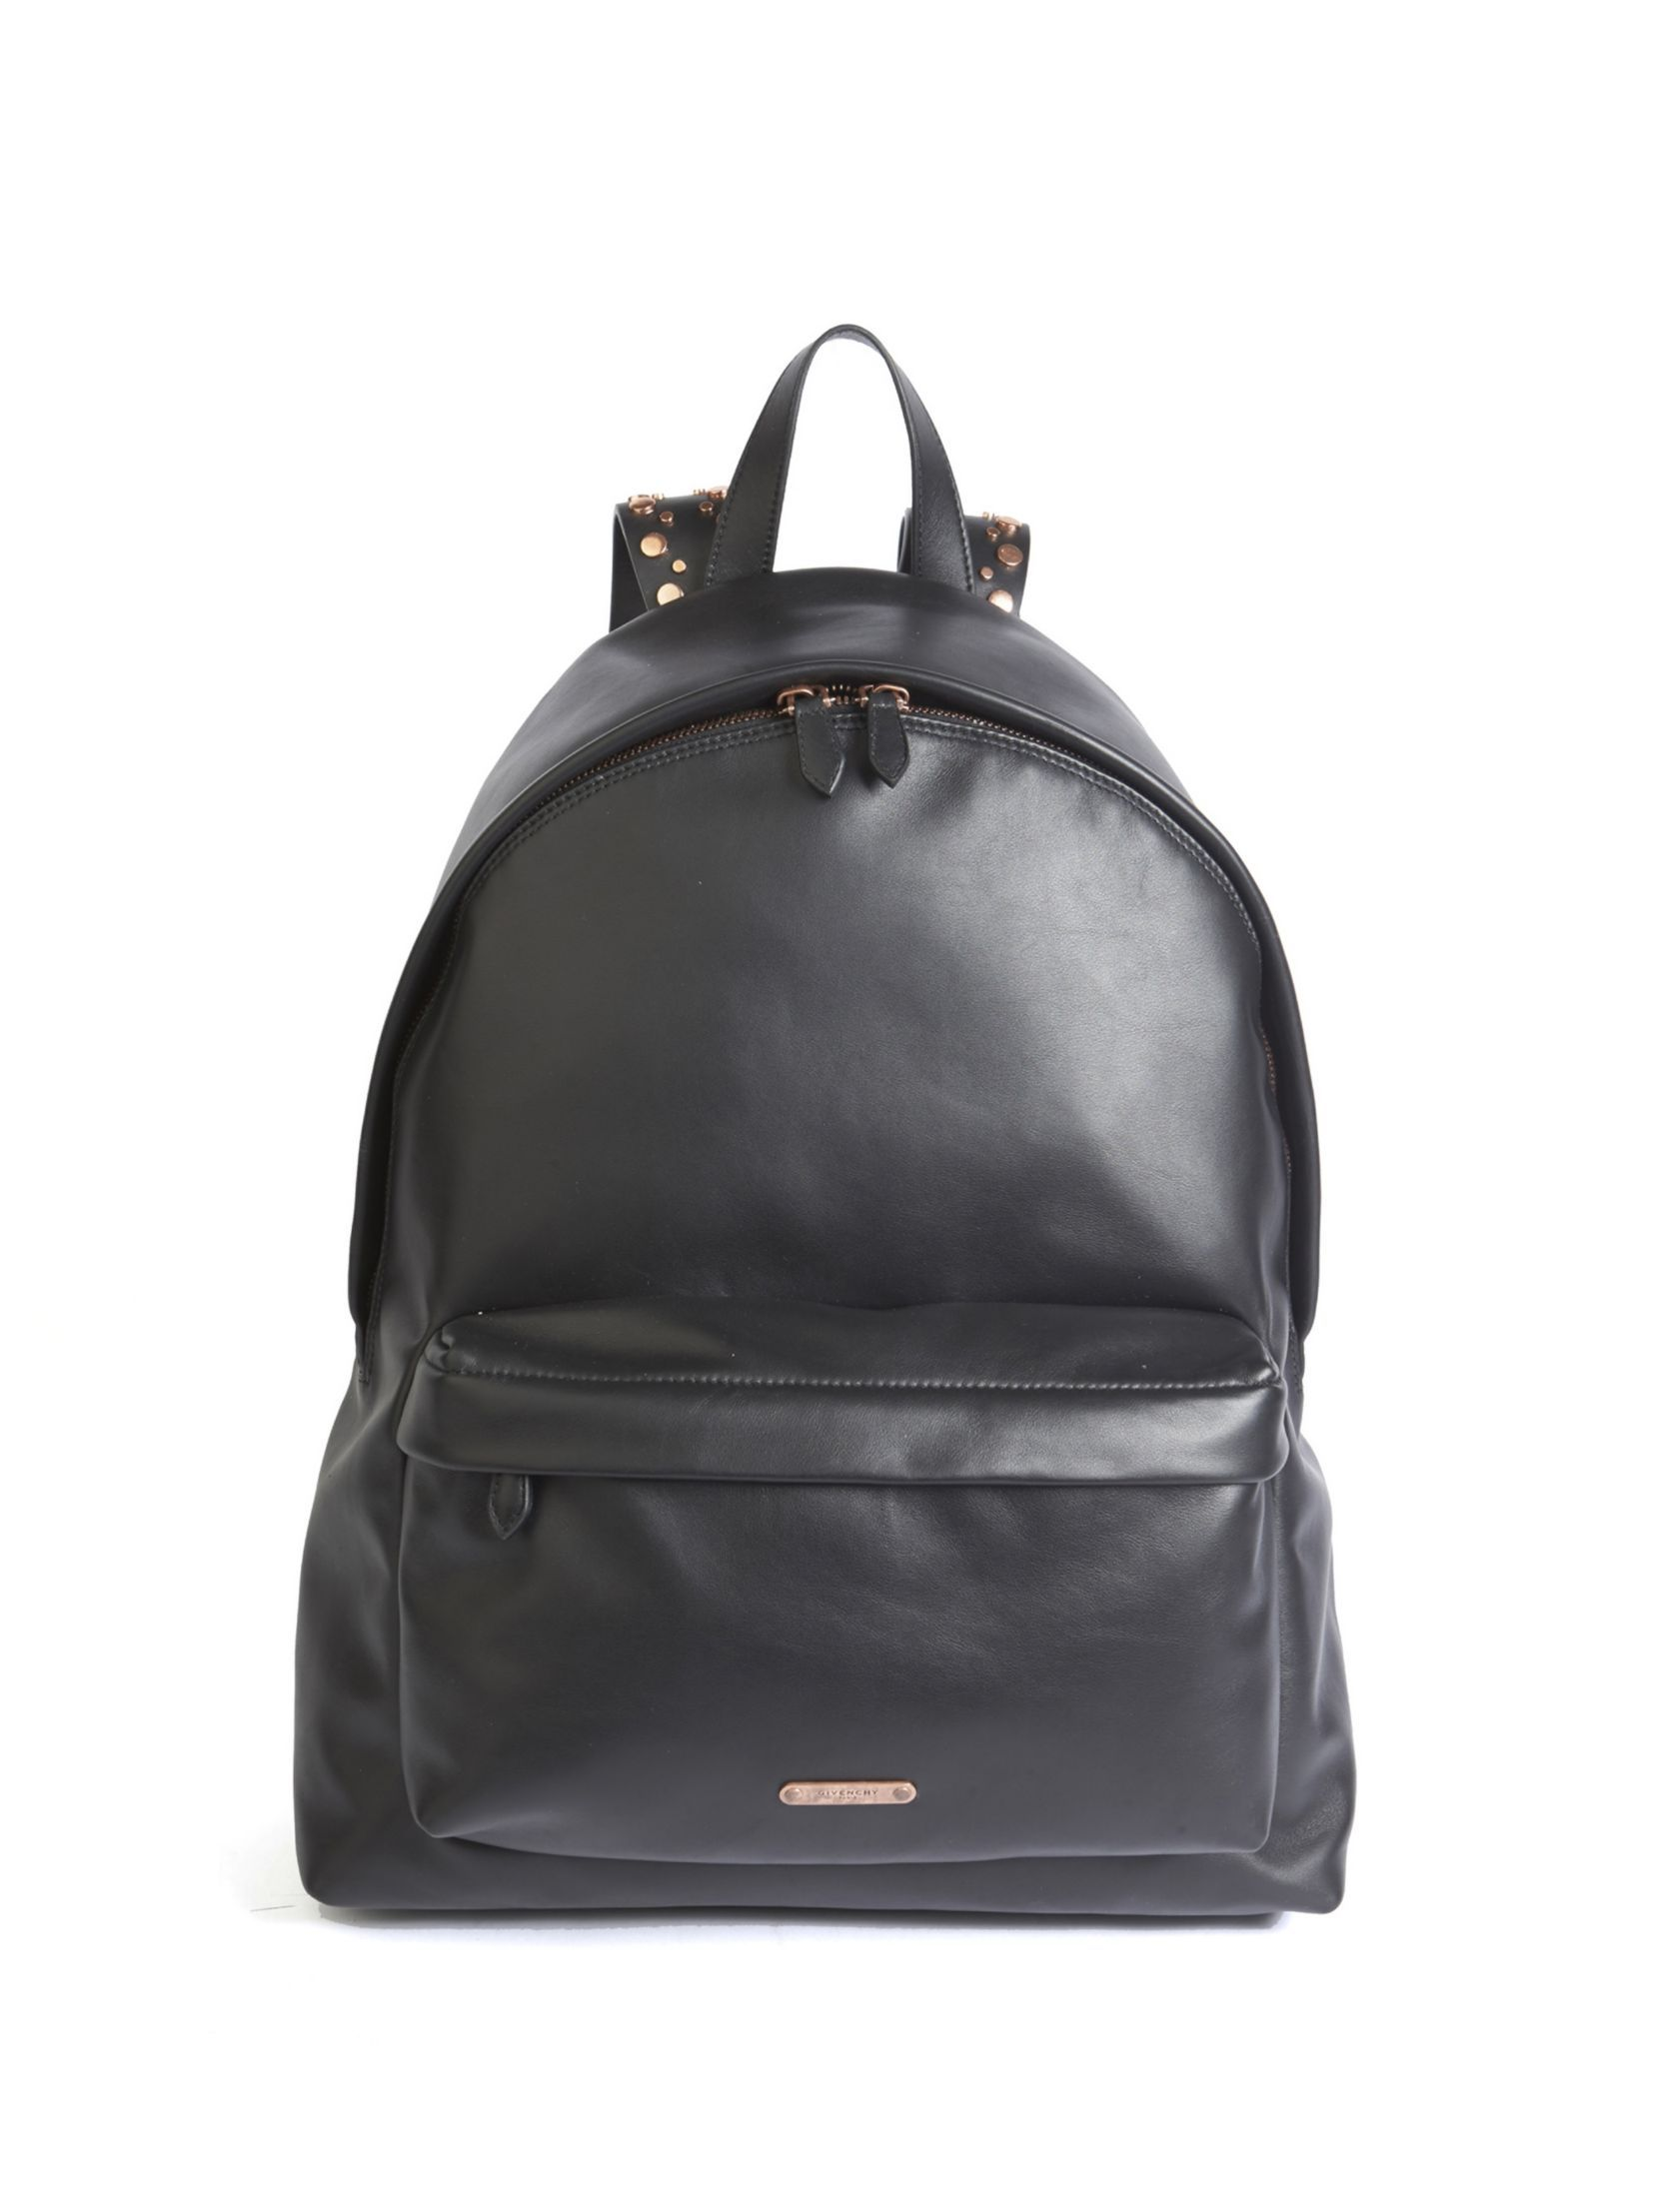 Backpack givenchy designs replica